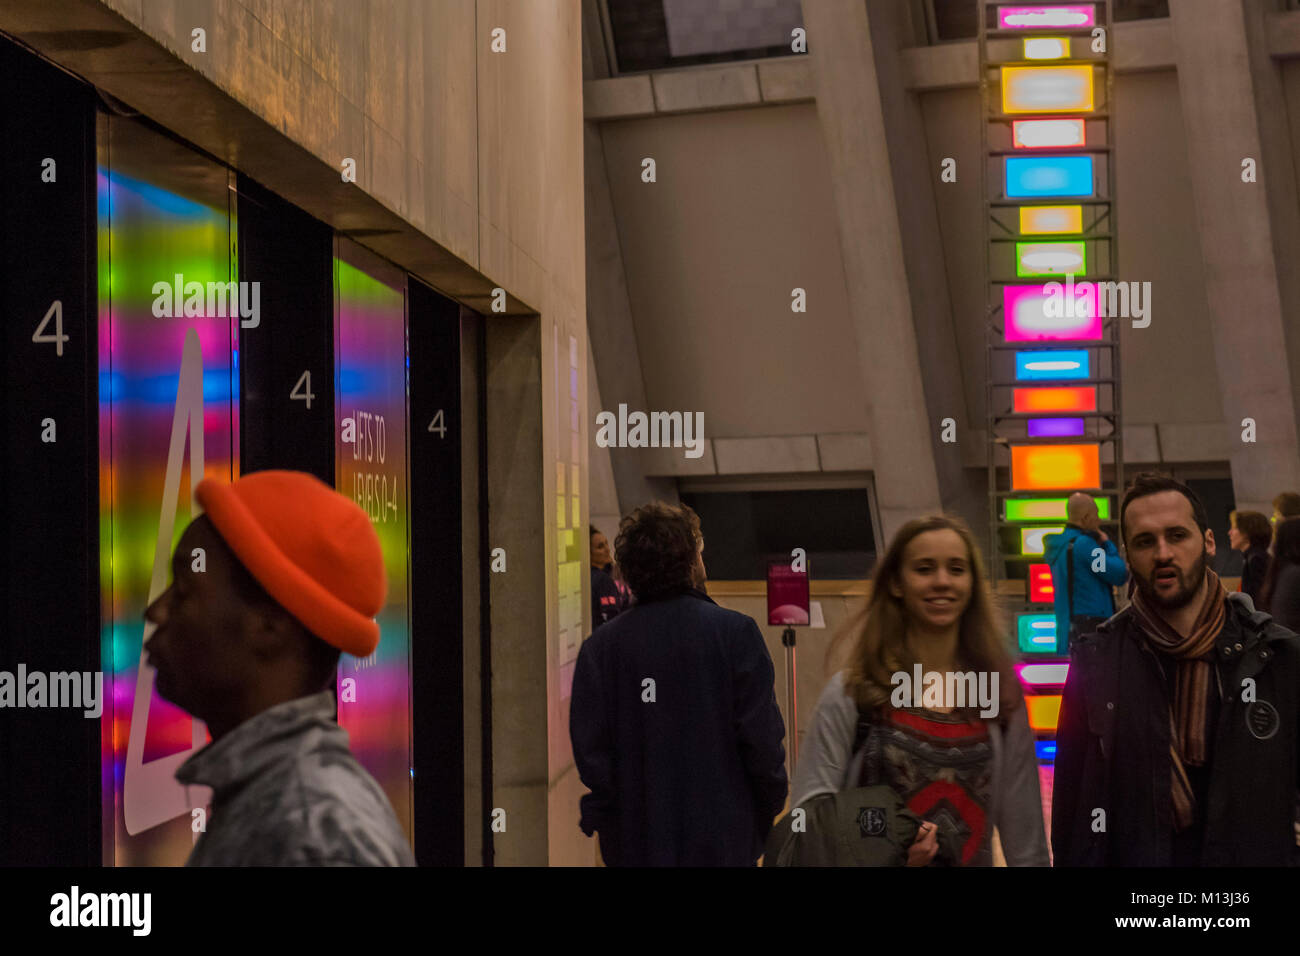 London, UK. 26th Jan, 2018. Spectrum of Brick Lane 2, 2007, by David Batchelor - The Tate Late supported by Uniqlo - Stock Image